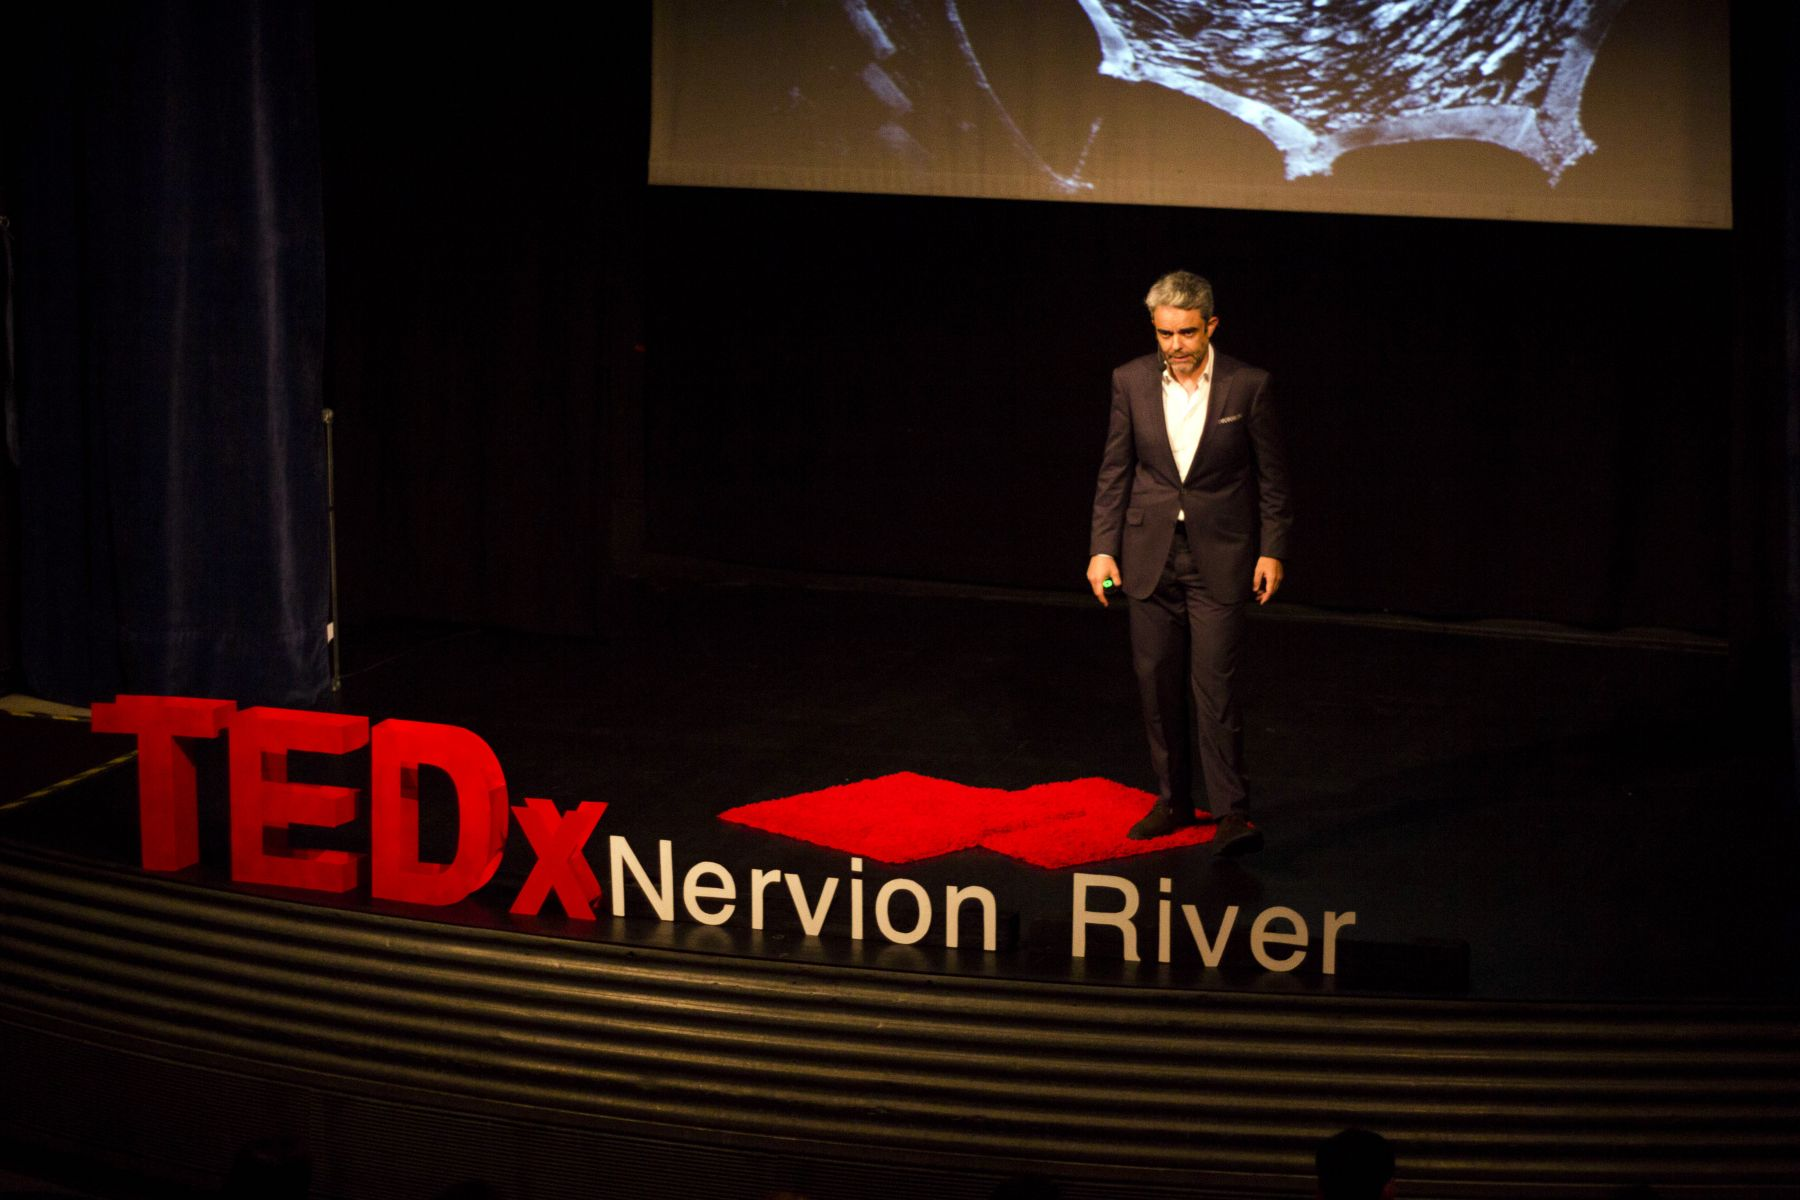 TEDx Nervion River Tatabi Studio Projects